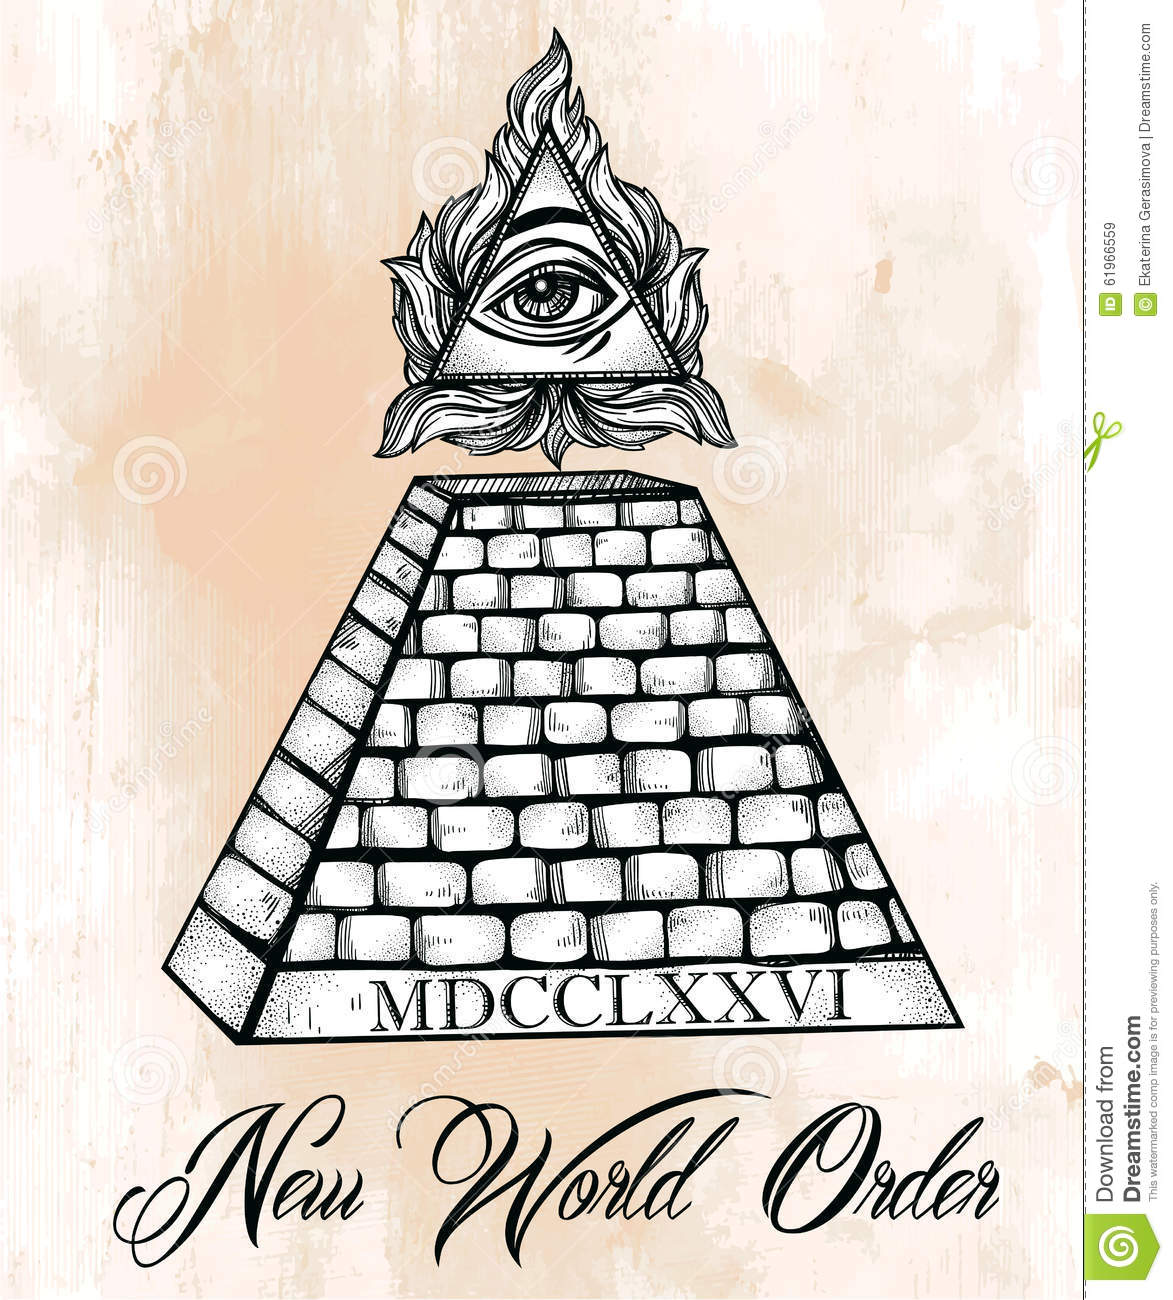 All Seeing Eye Pyramid Symbol Stock Vector Illustration Of Aged